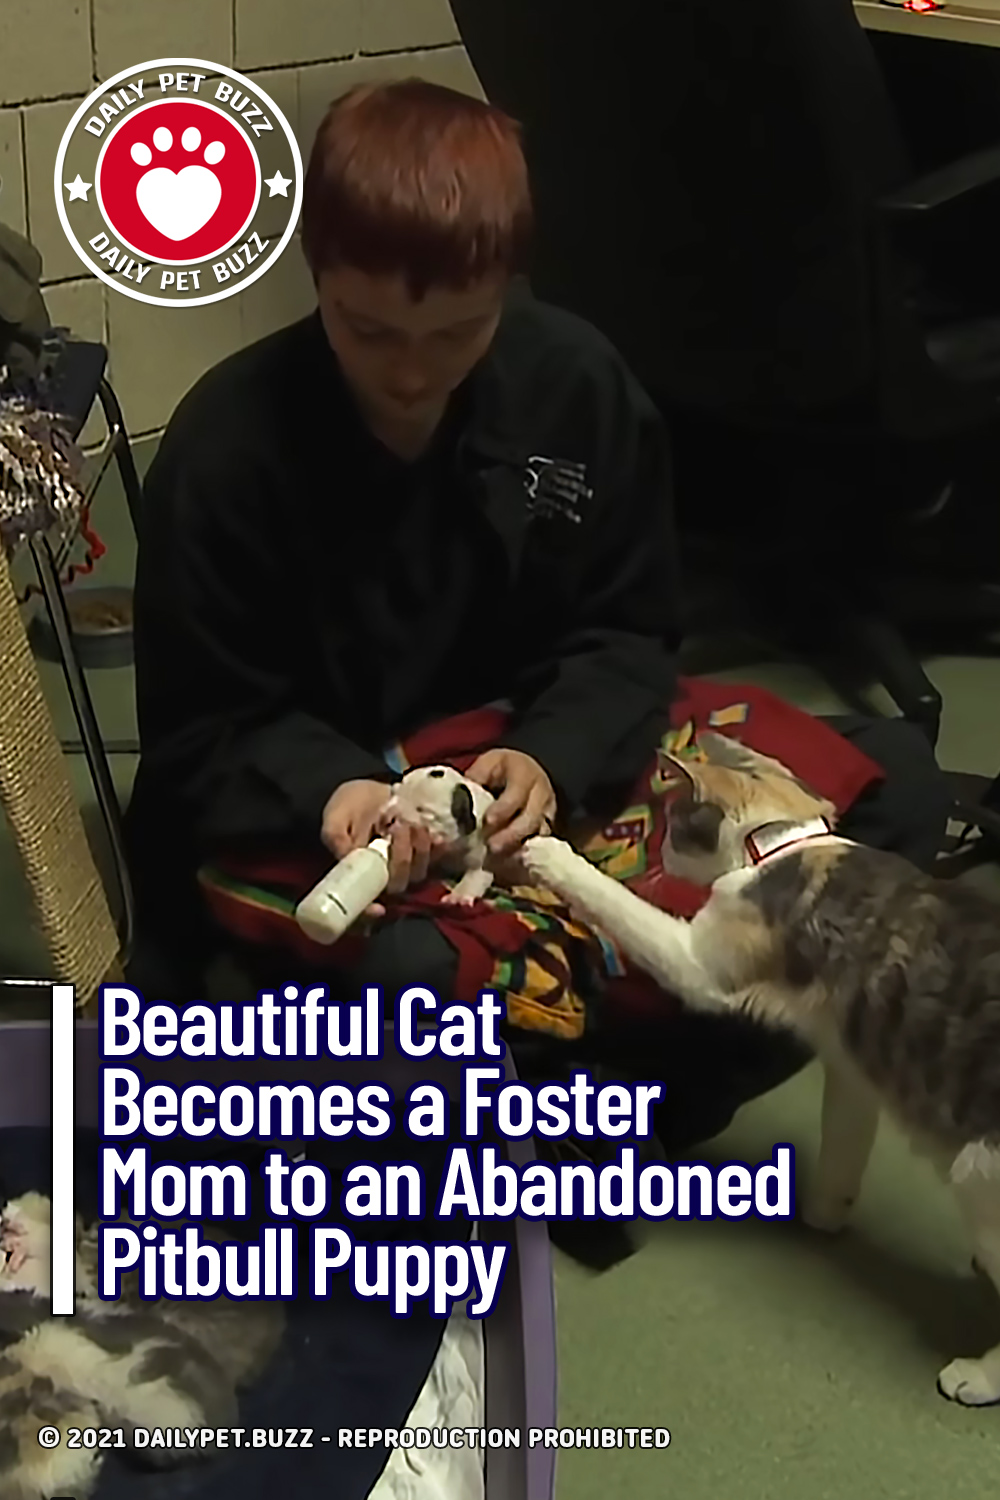 Beautiful Cat Becomes a Foster Mom to an Abandoned Pitbull Puppy